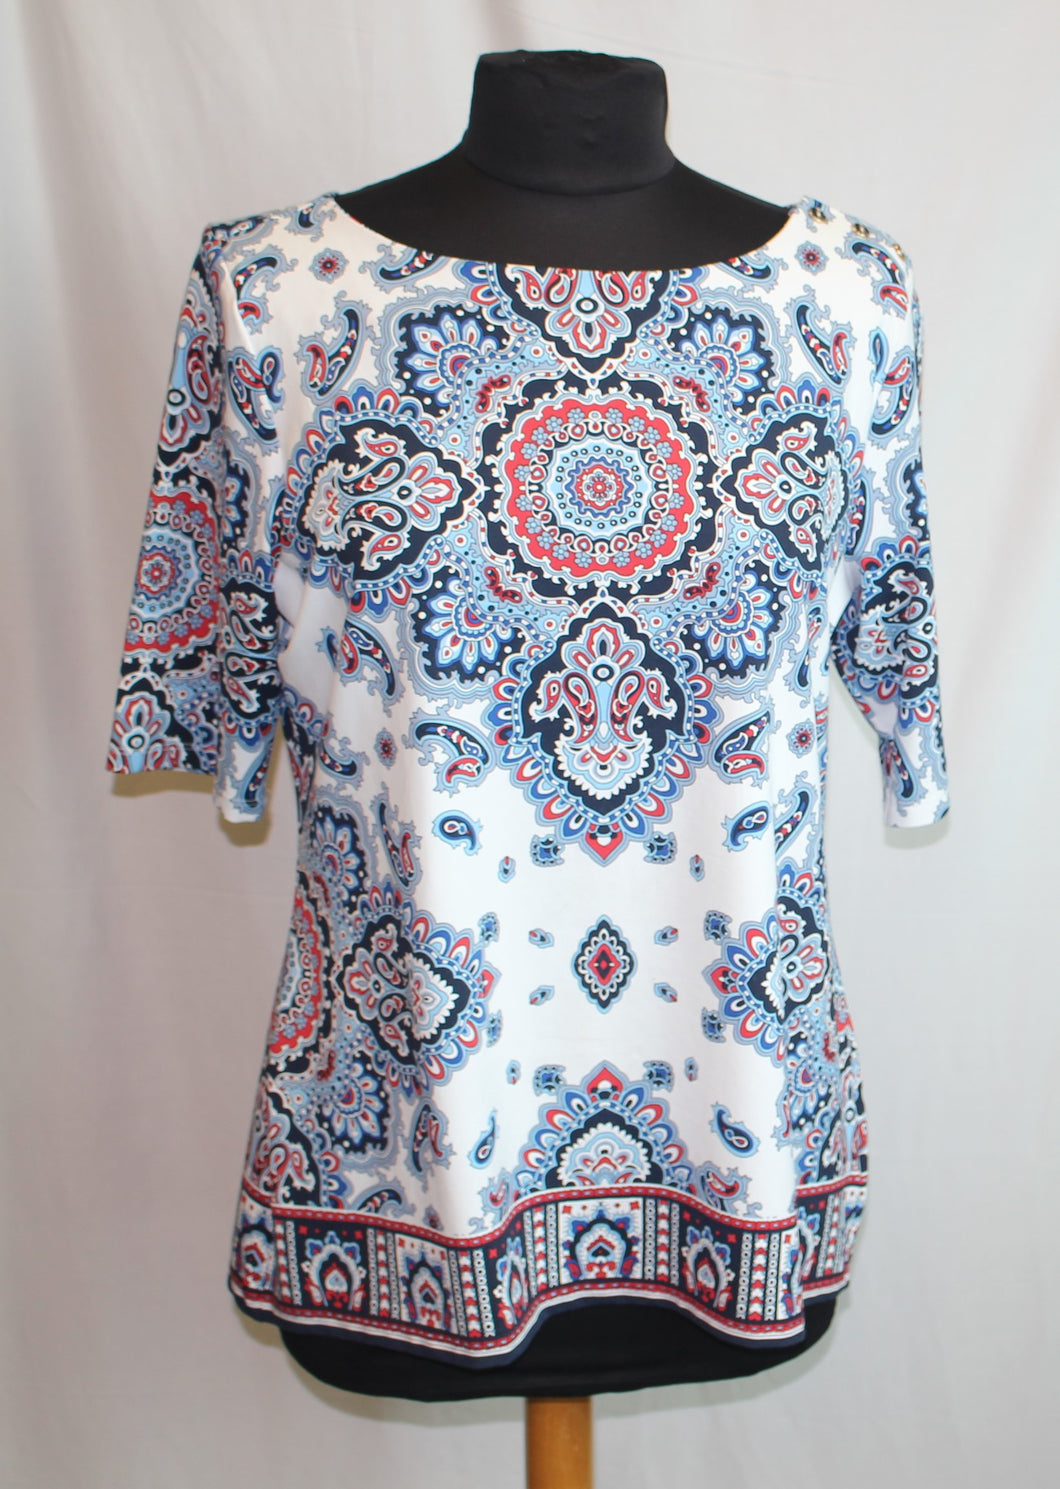 Women's red/white/blue top                   Size L              4/21A